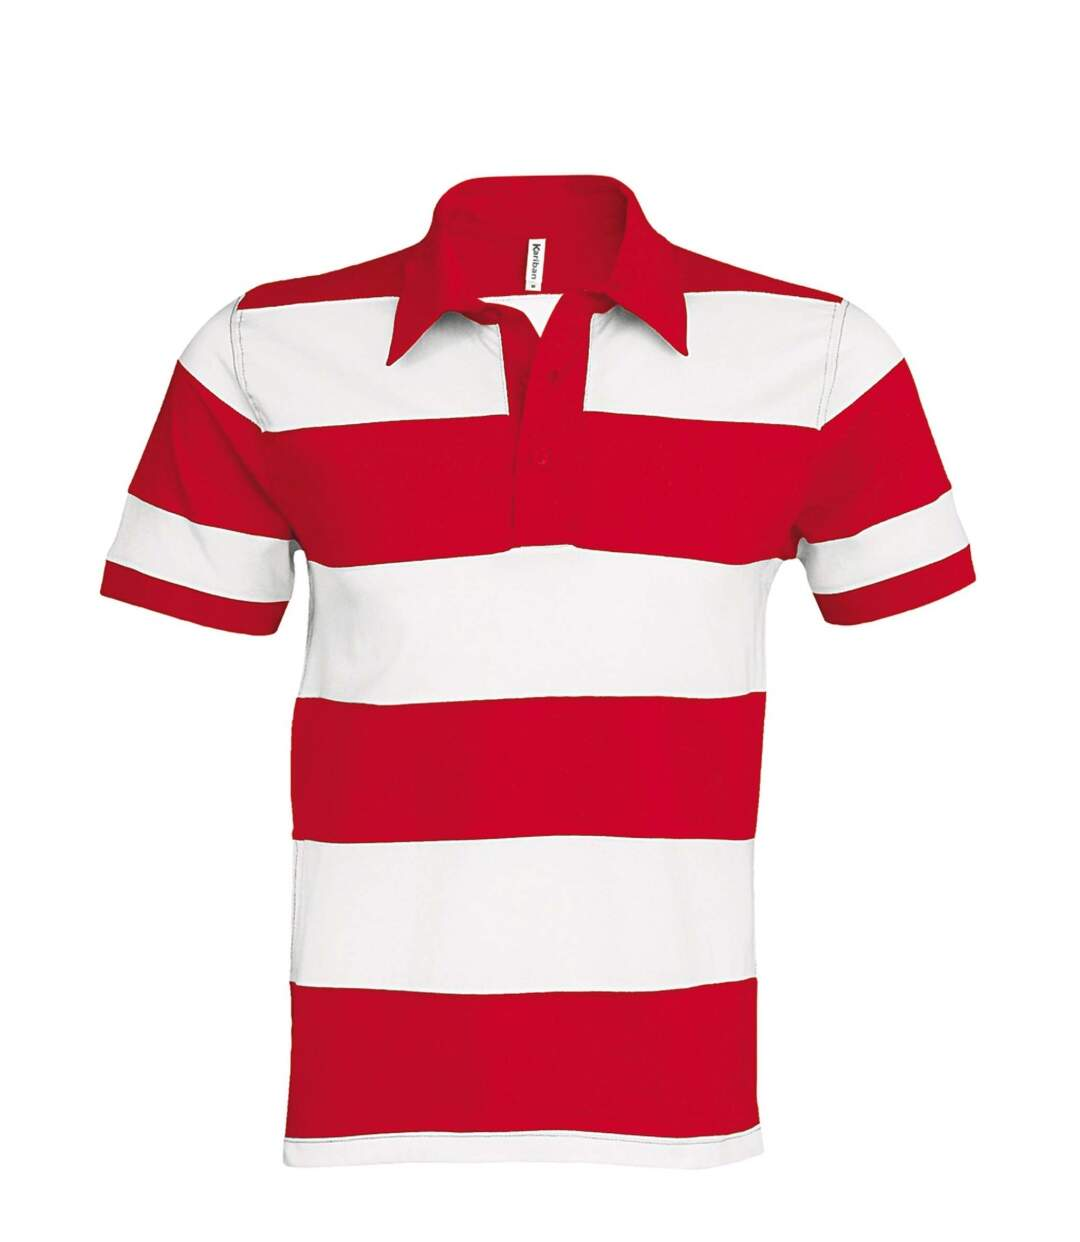 Polo homme rugby - K237 rayé rouge et blanc - manches courtes